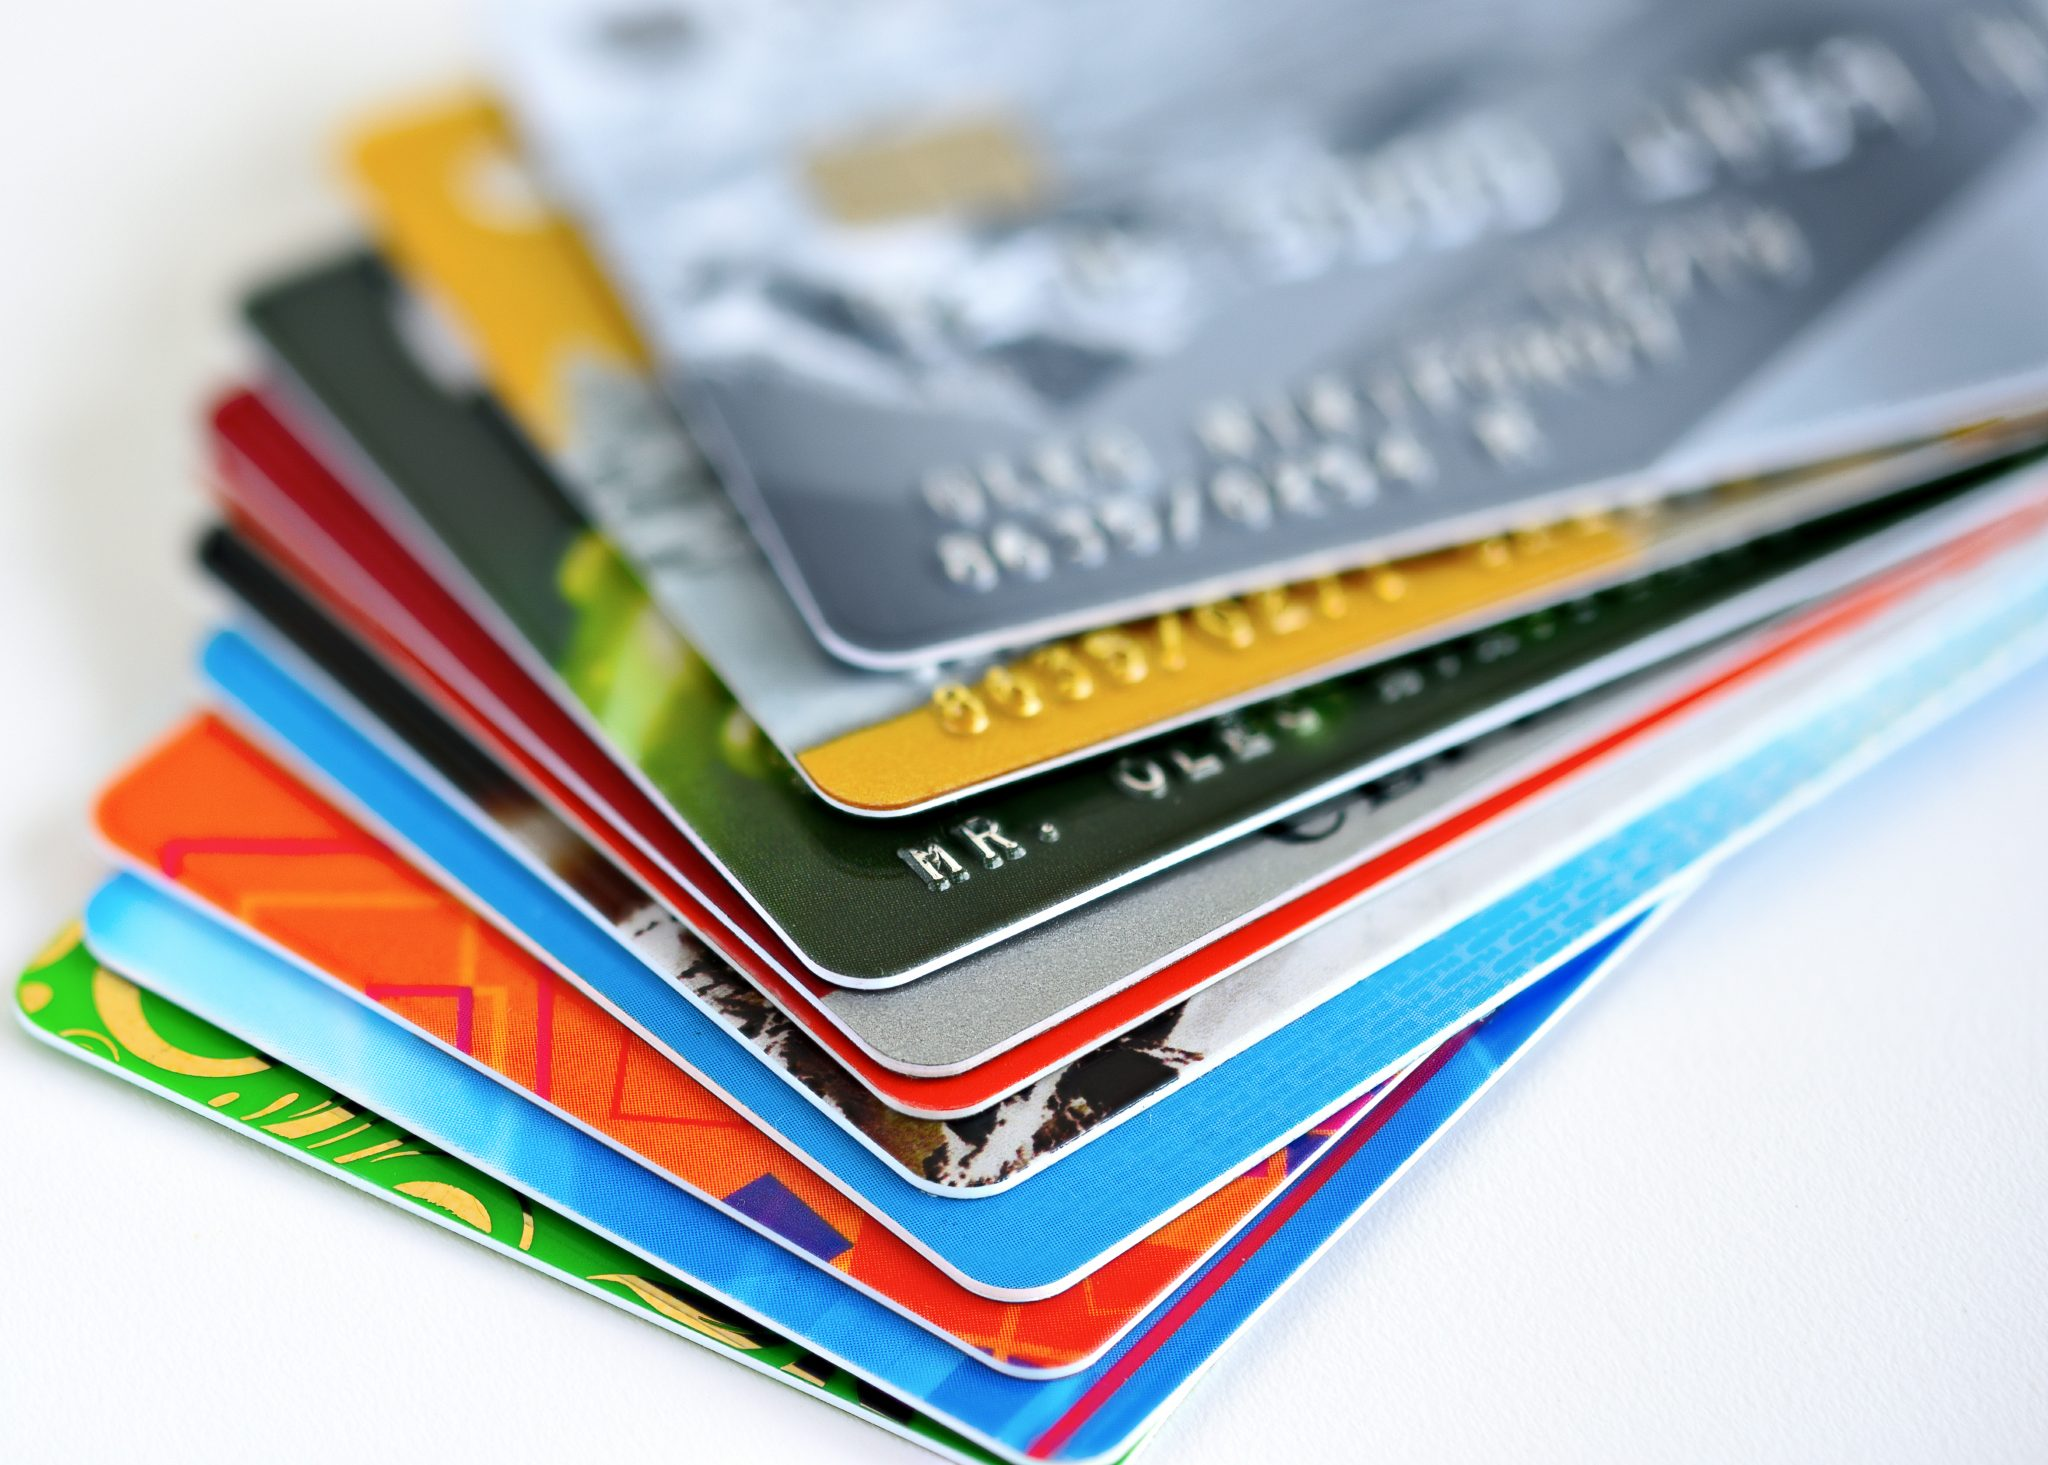 A stack of credit cards